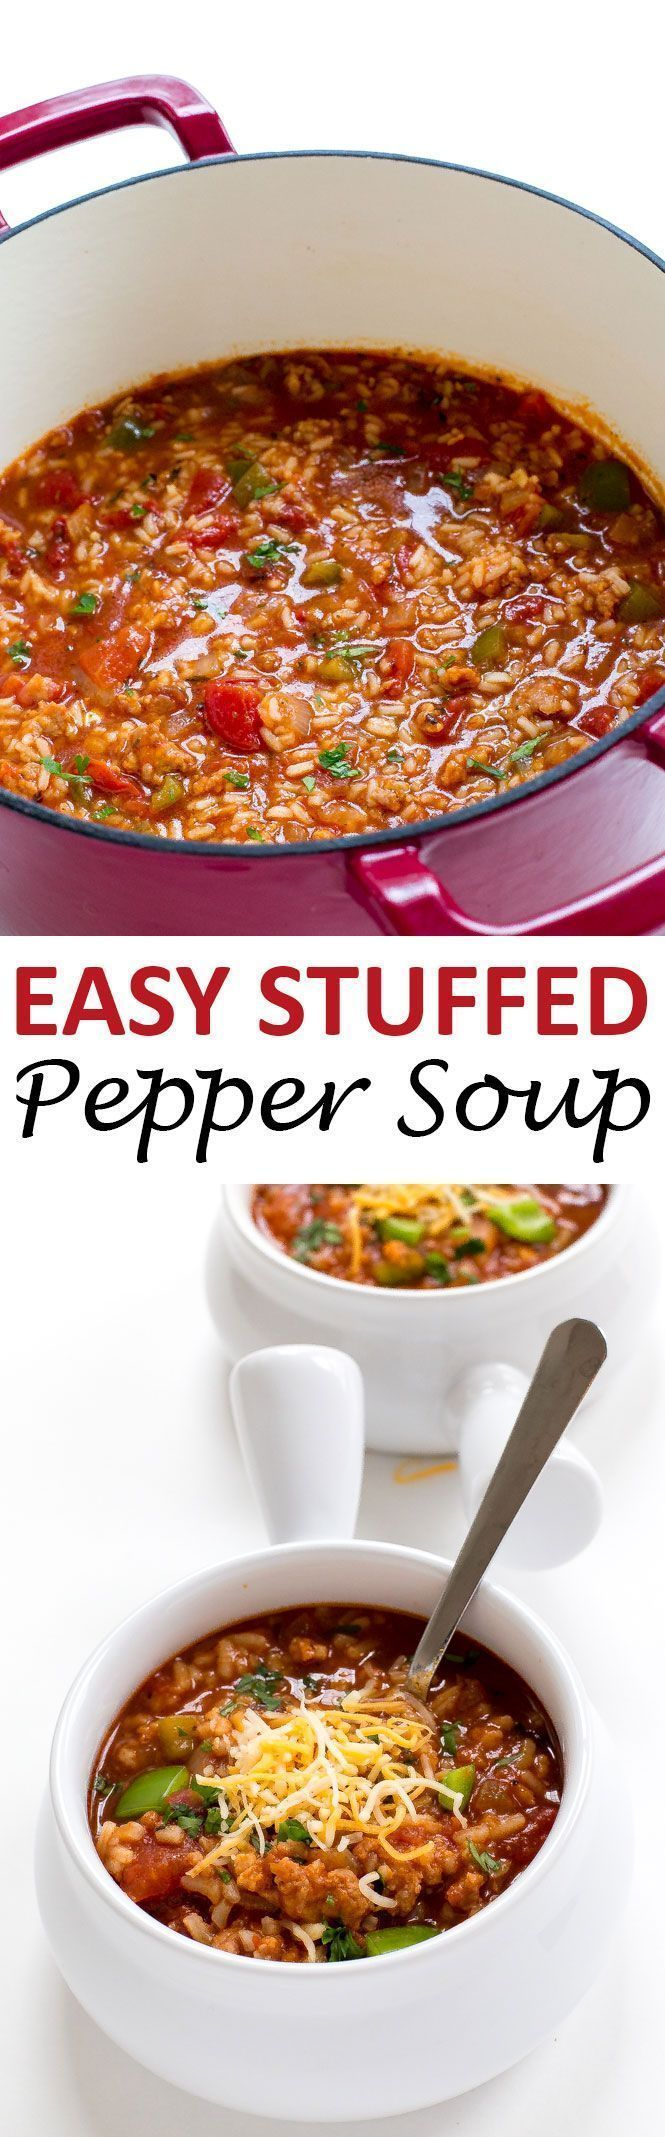 Stuffed Pepper Soup loaded with spicy sausage, bell peppers and rice! Everything you love about a stuffed pepper but in soup form! | chefsavvy.com #recipe #soup #stuffed #pepper